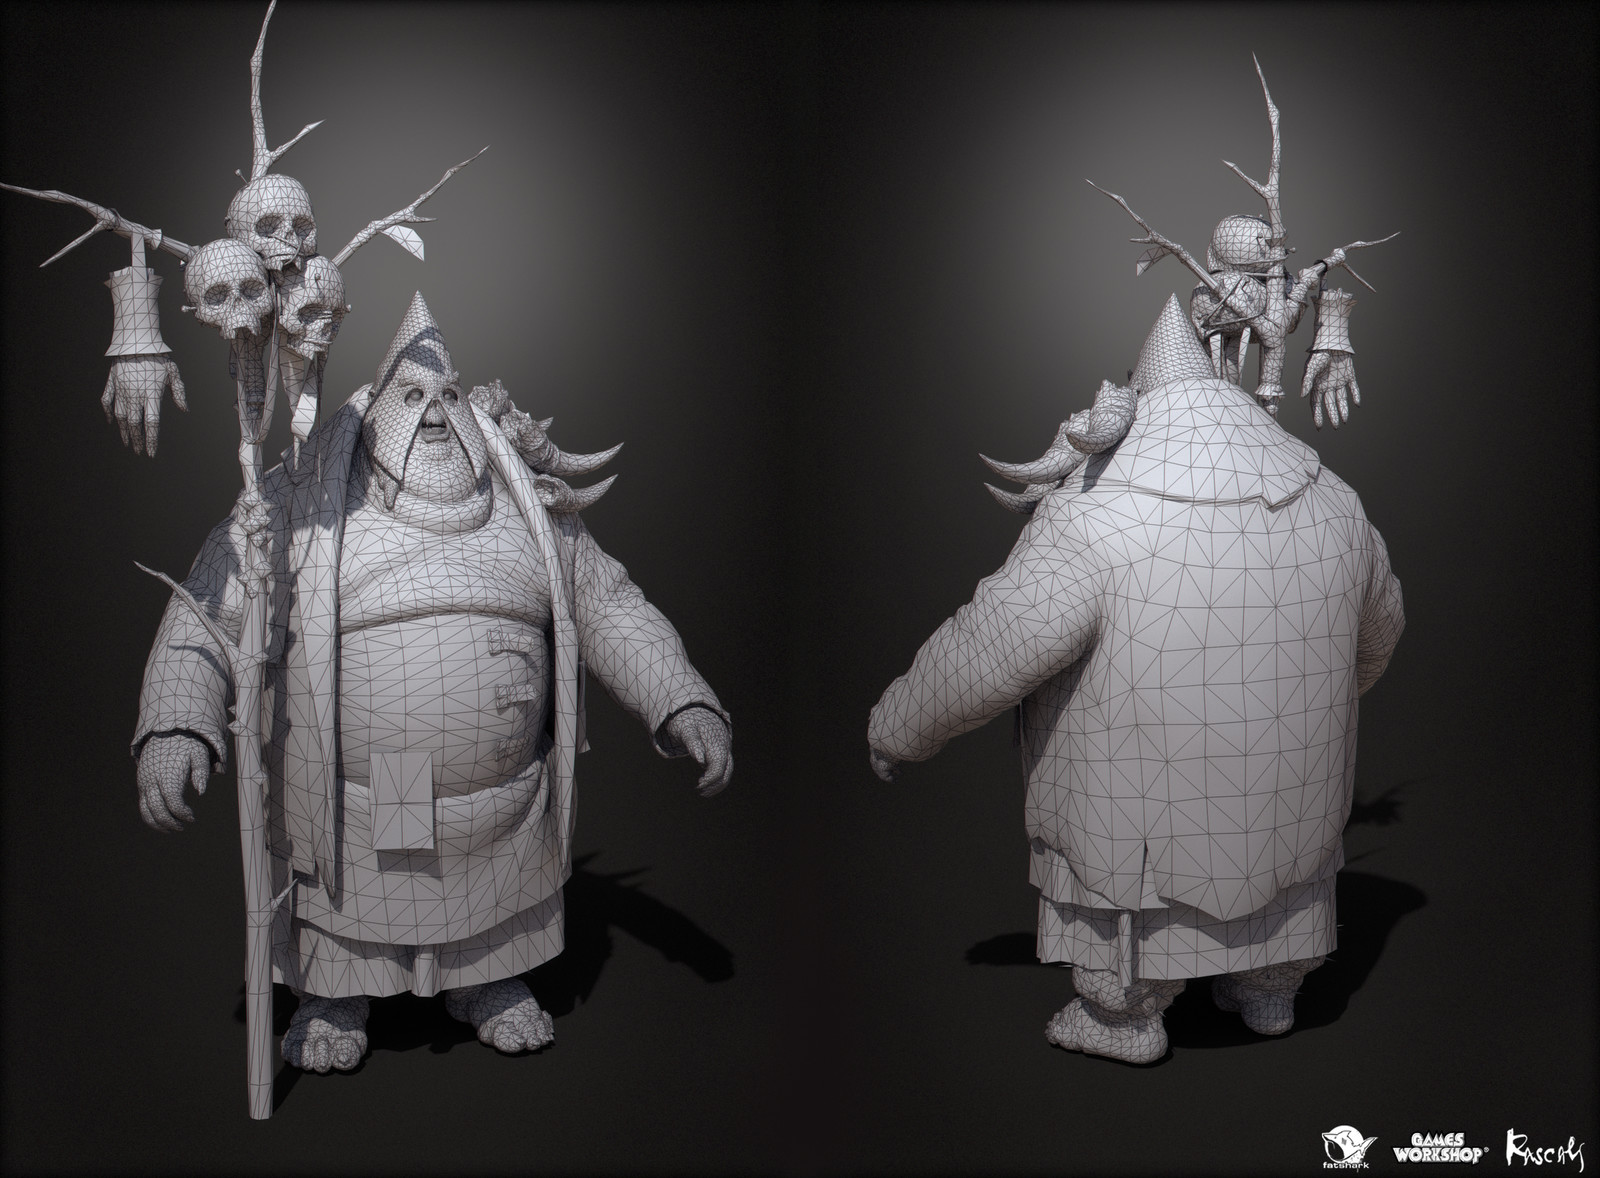 The sorcerer is made of 37K polys and 4K textures.